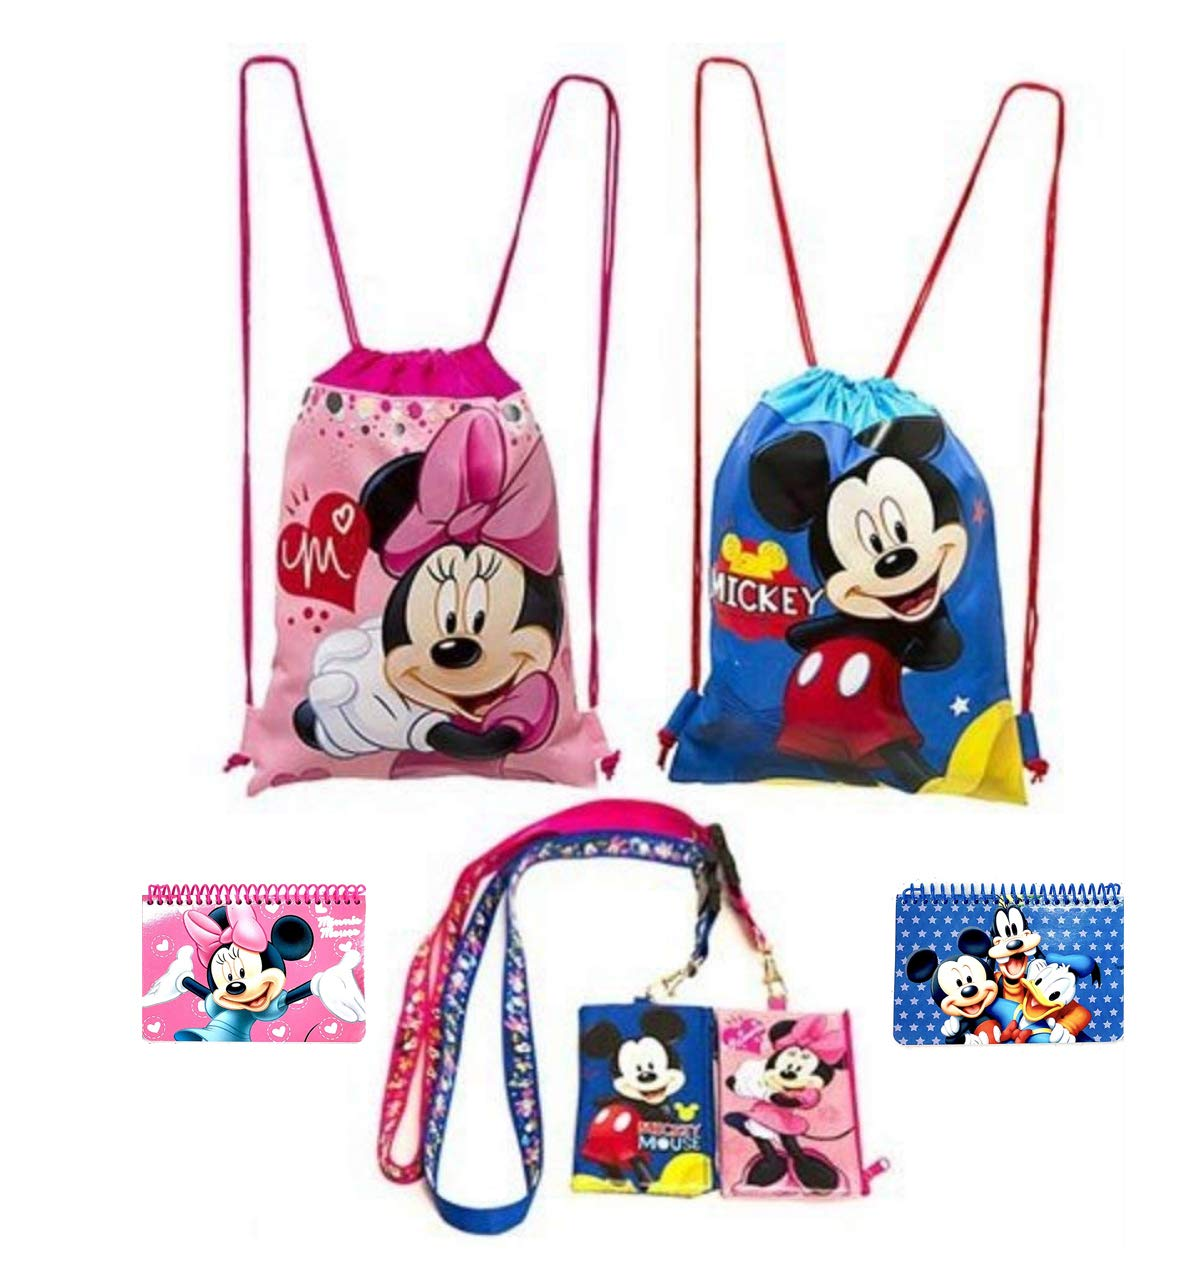 Disney Mickey and Minnie Mouse Drawstring Backpacks Plus Lanyards with Detachable Coin Purse and Autograph Books (Set of 6) (Pink - Dark Blue)